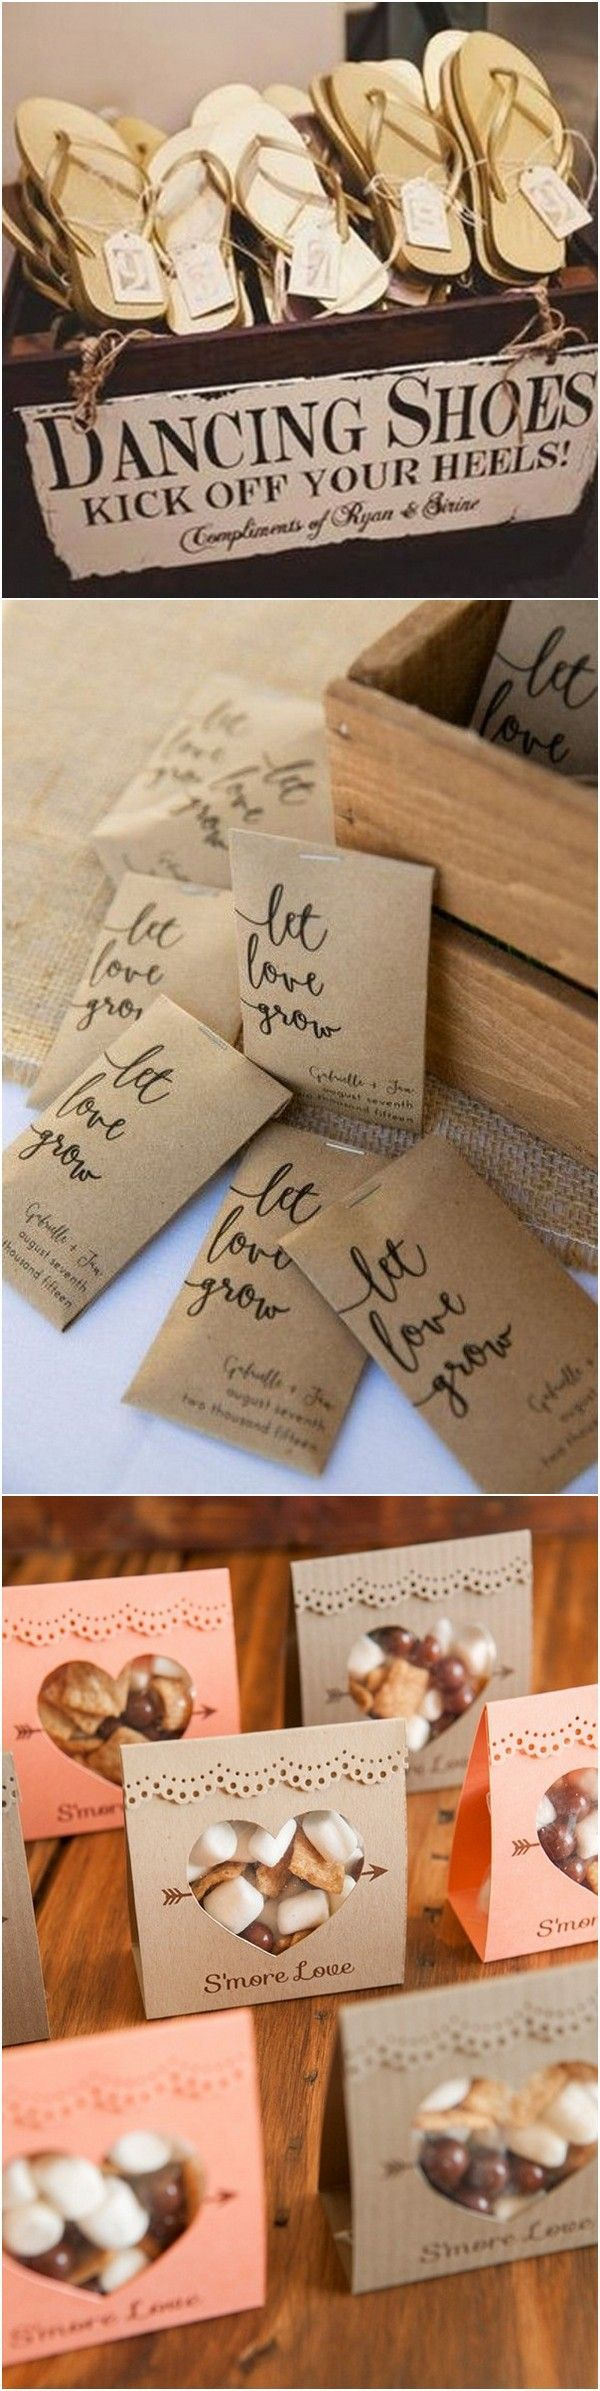 top 10 unique wedding favor ideas your guests love wedding diy to dos crafts and projects. Black Bedroom Furniture Sets. Home Design Ideas